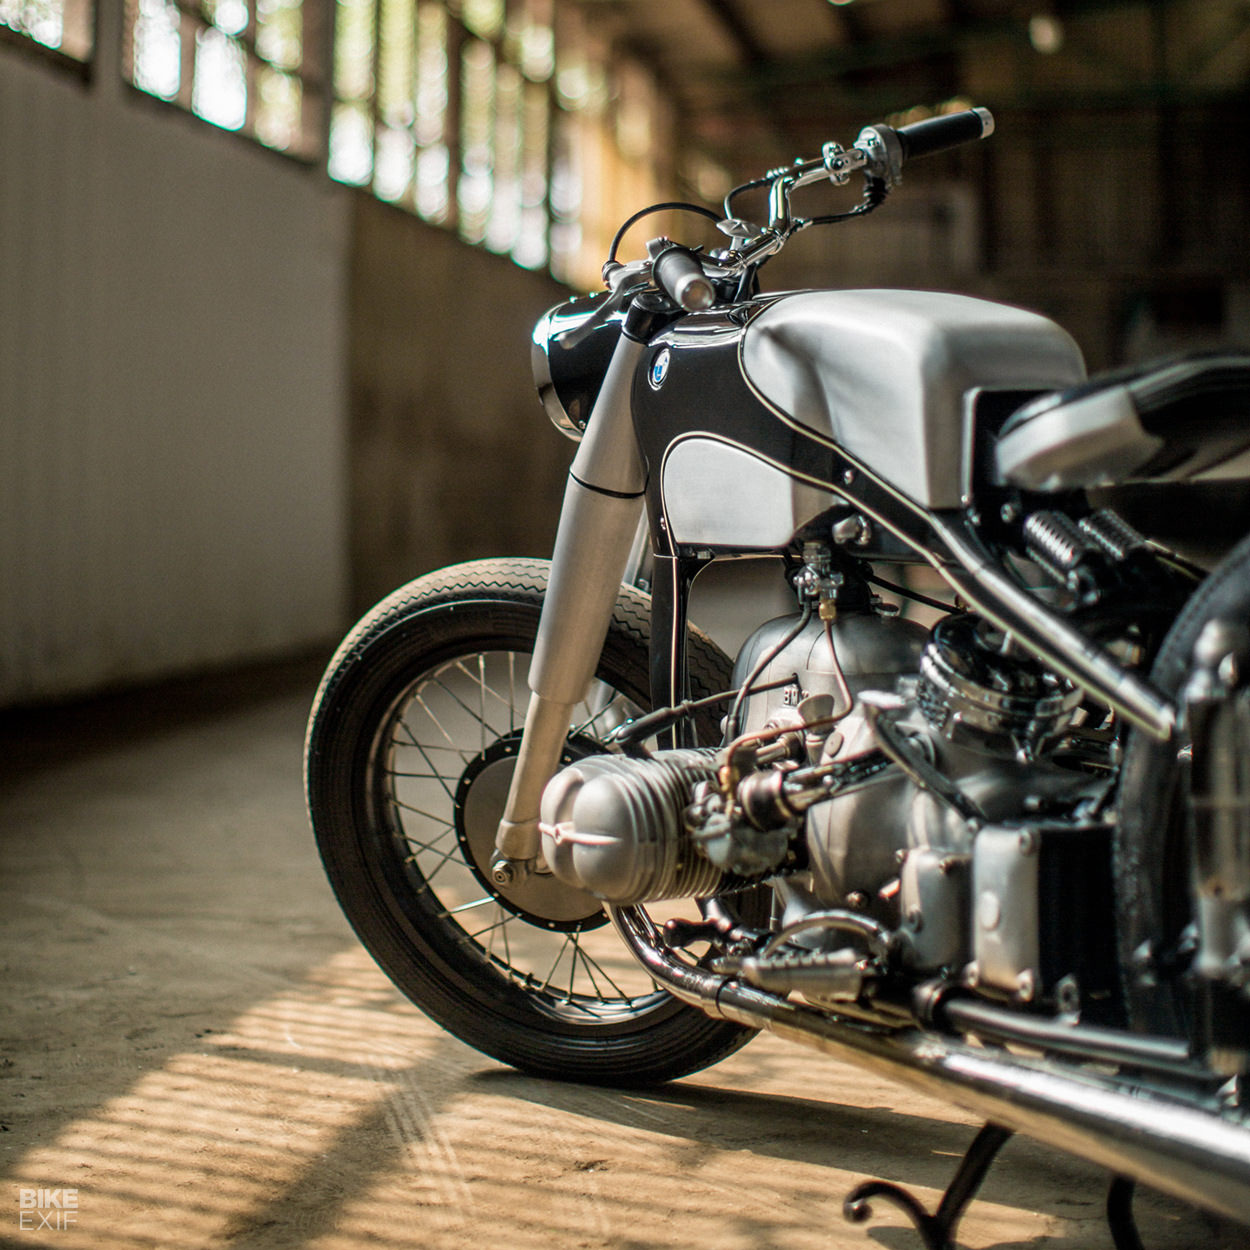 Reviving an icon: A BMW R51/3 restomod from Thrive